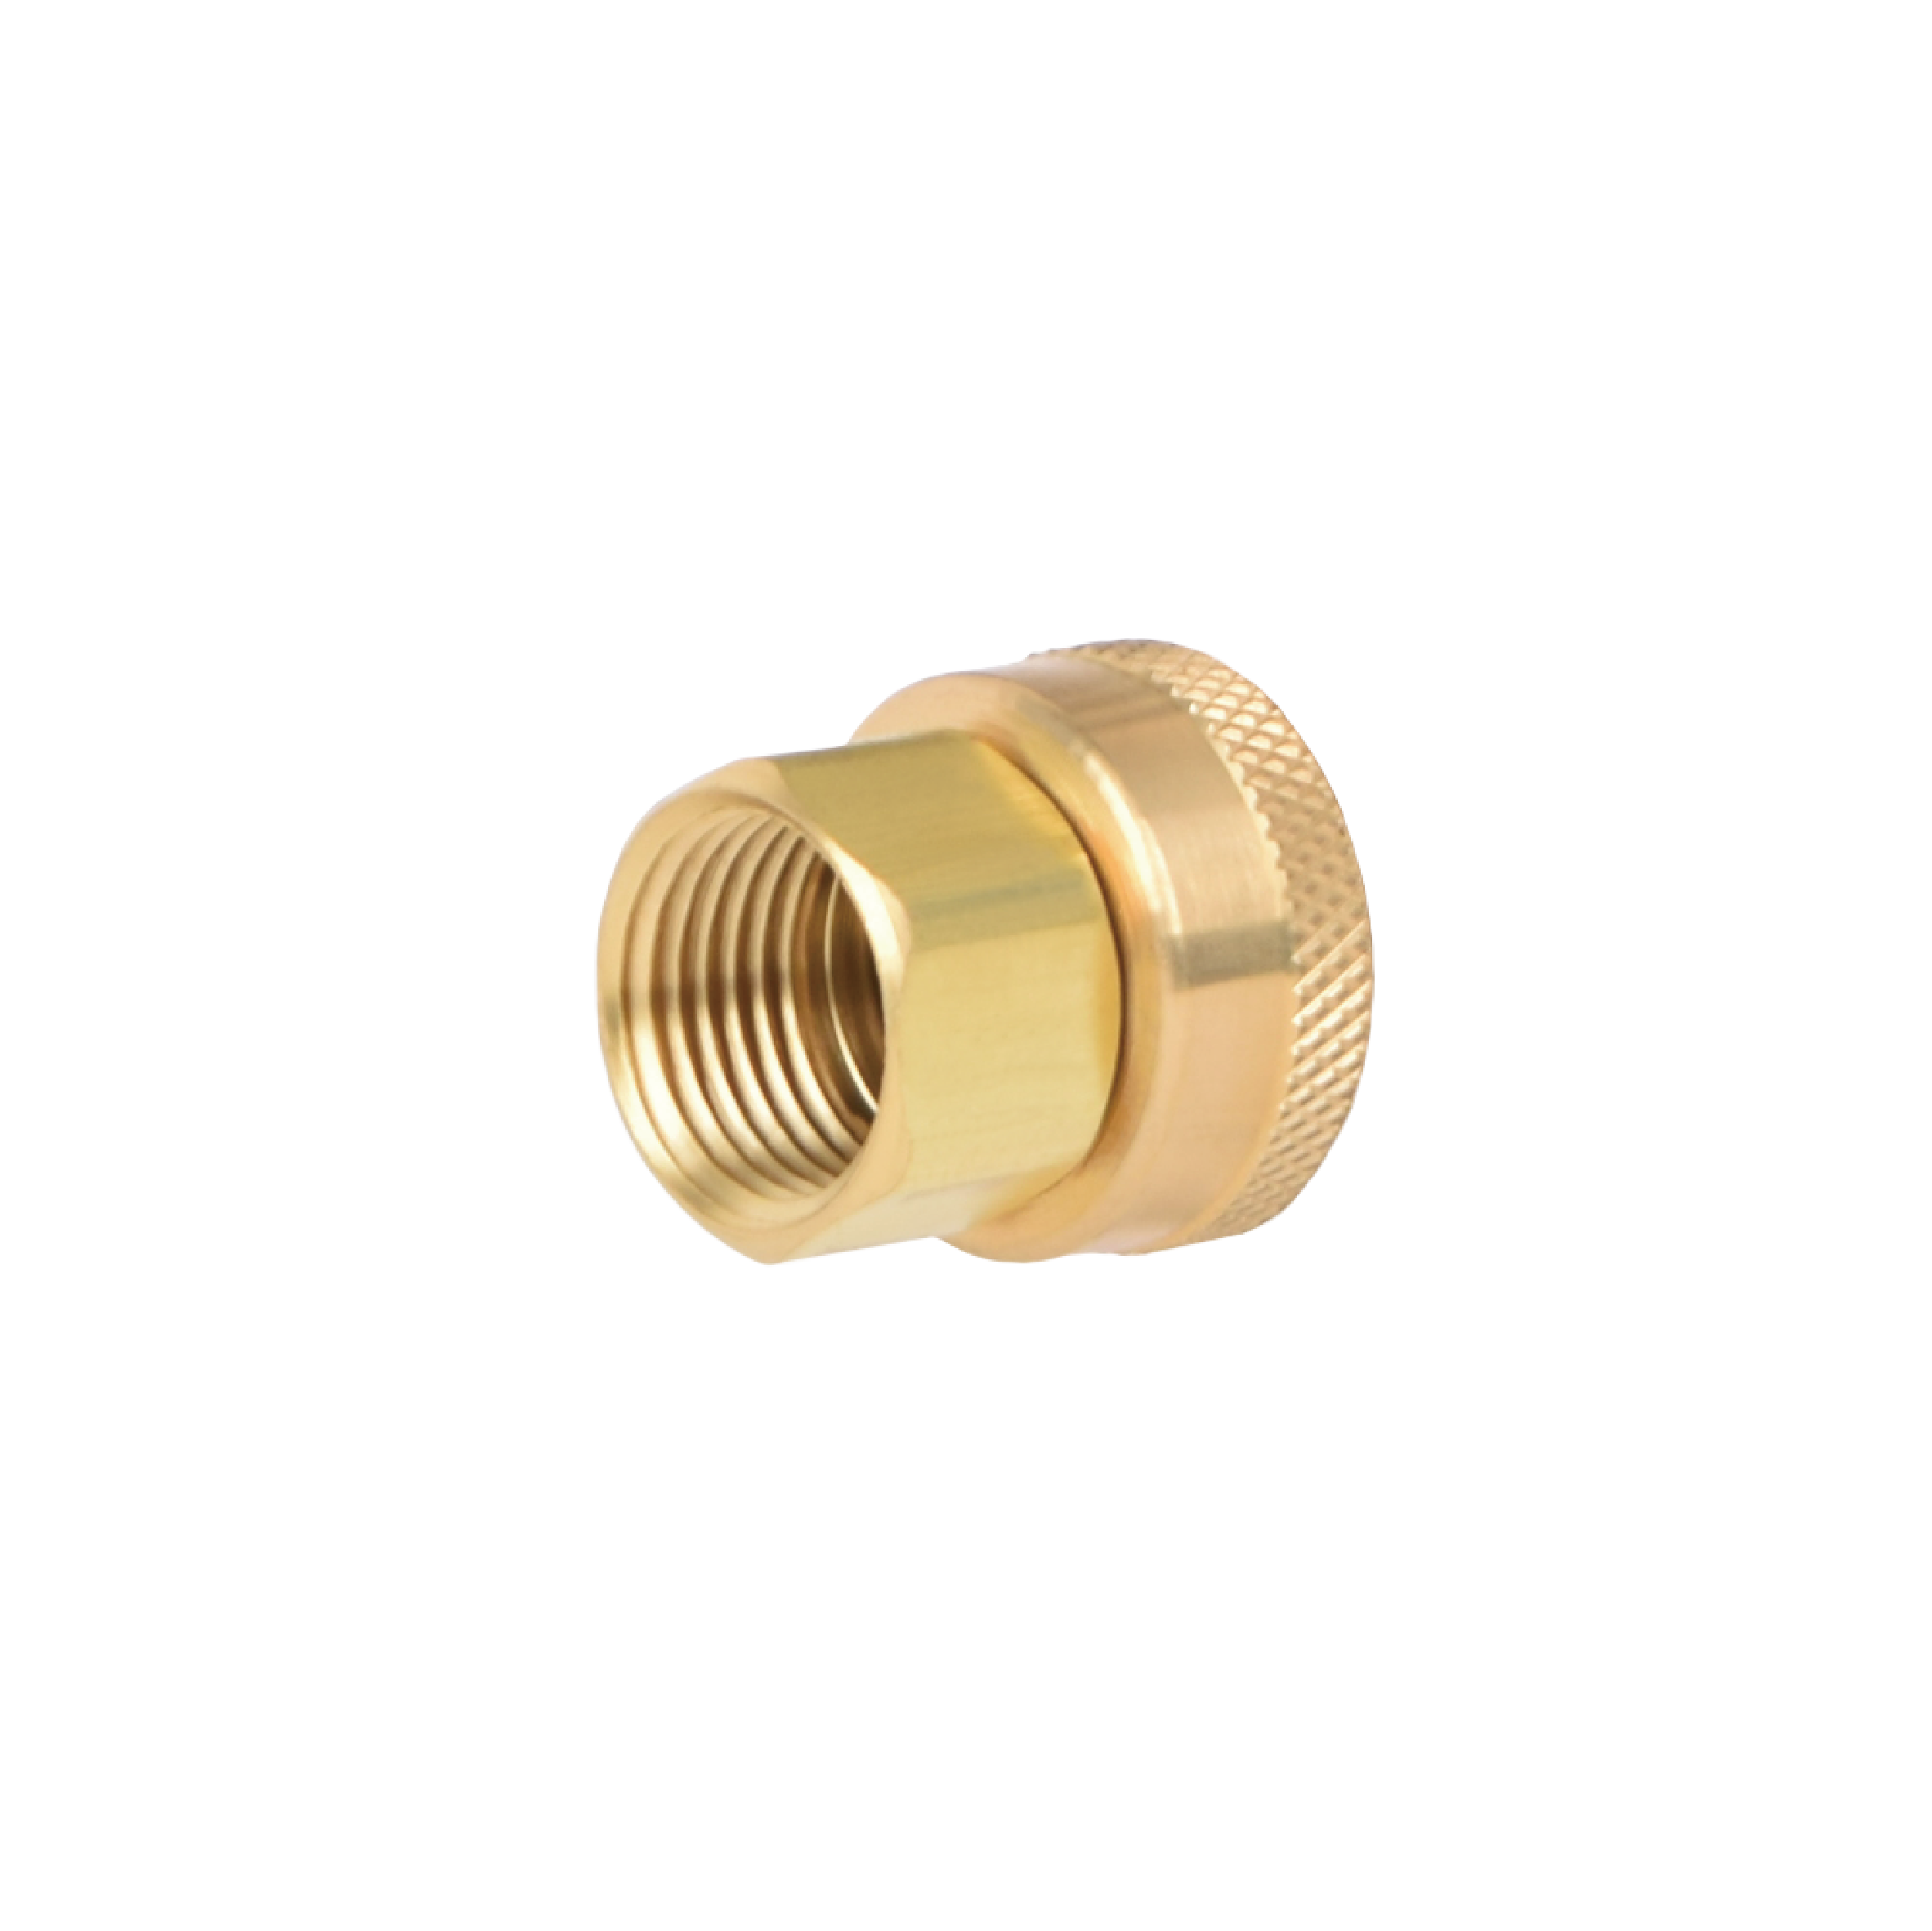 HOSE ADAPTER SWIVEL 3/4FH - 1/2FP